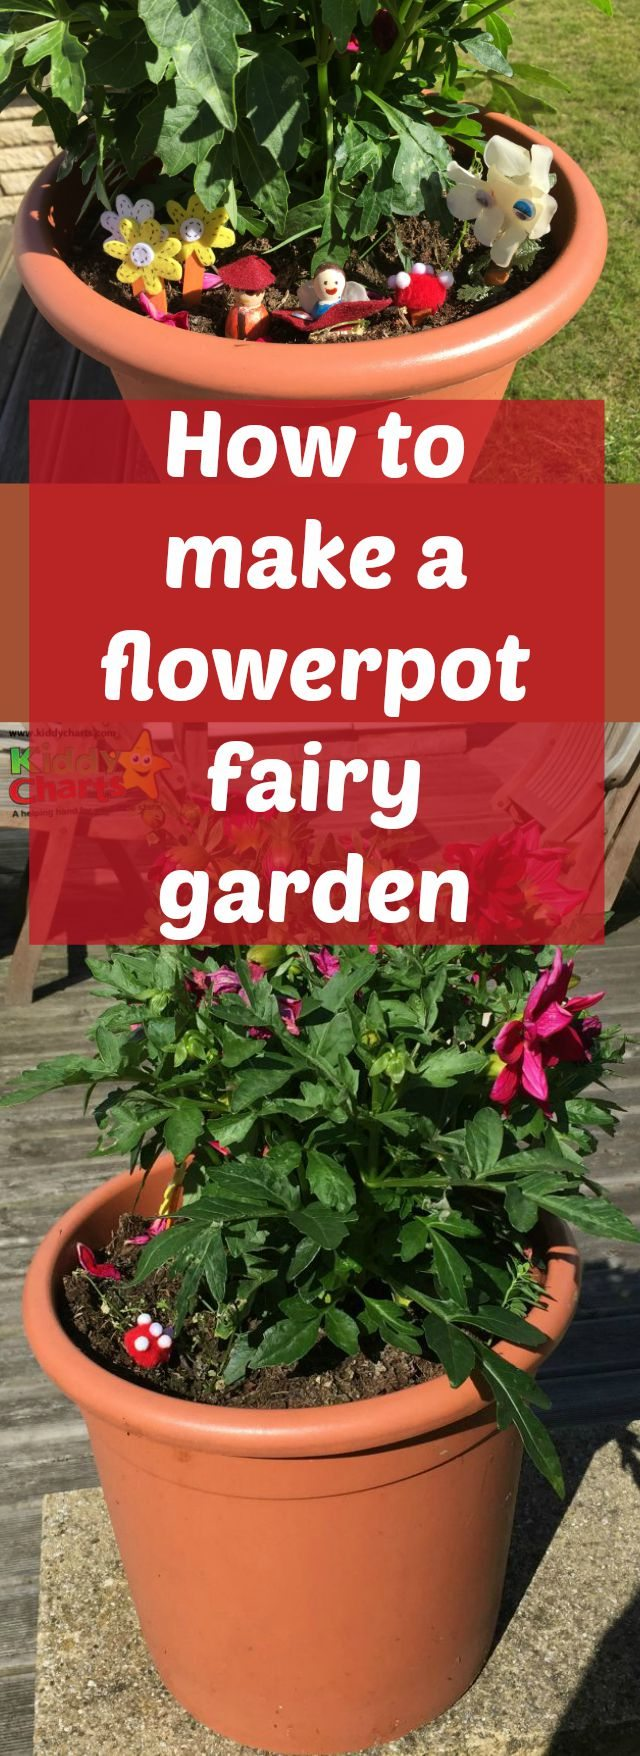 Crafts in the grden are a lovely thing to do with the kids - and this flowerpot fairy garden is no exception. Simple to make, and such fun to play with, the kids are bound to love it - ours definitely did!